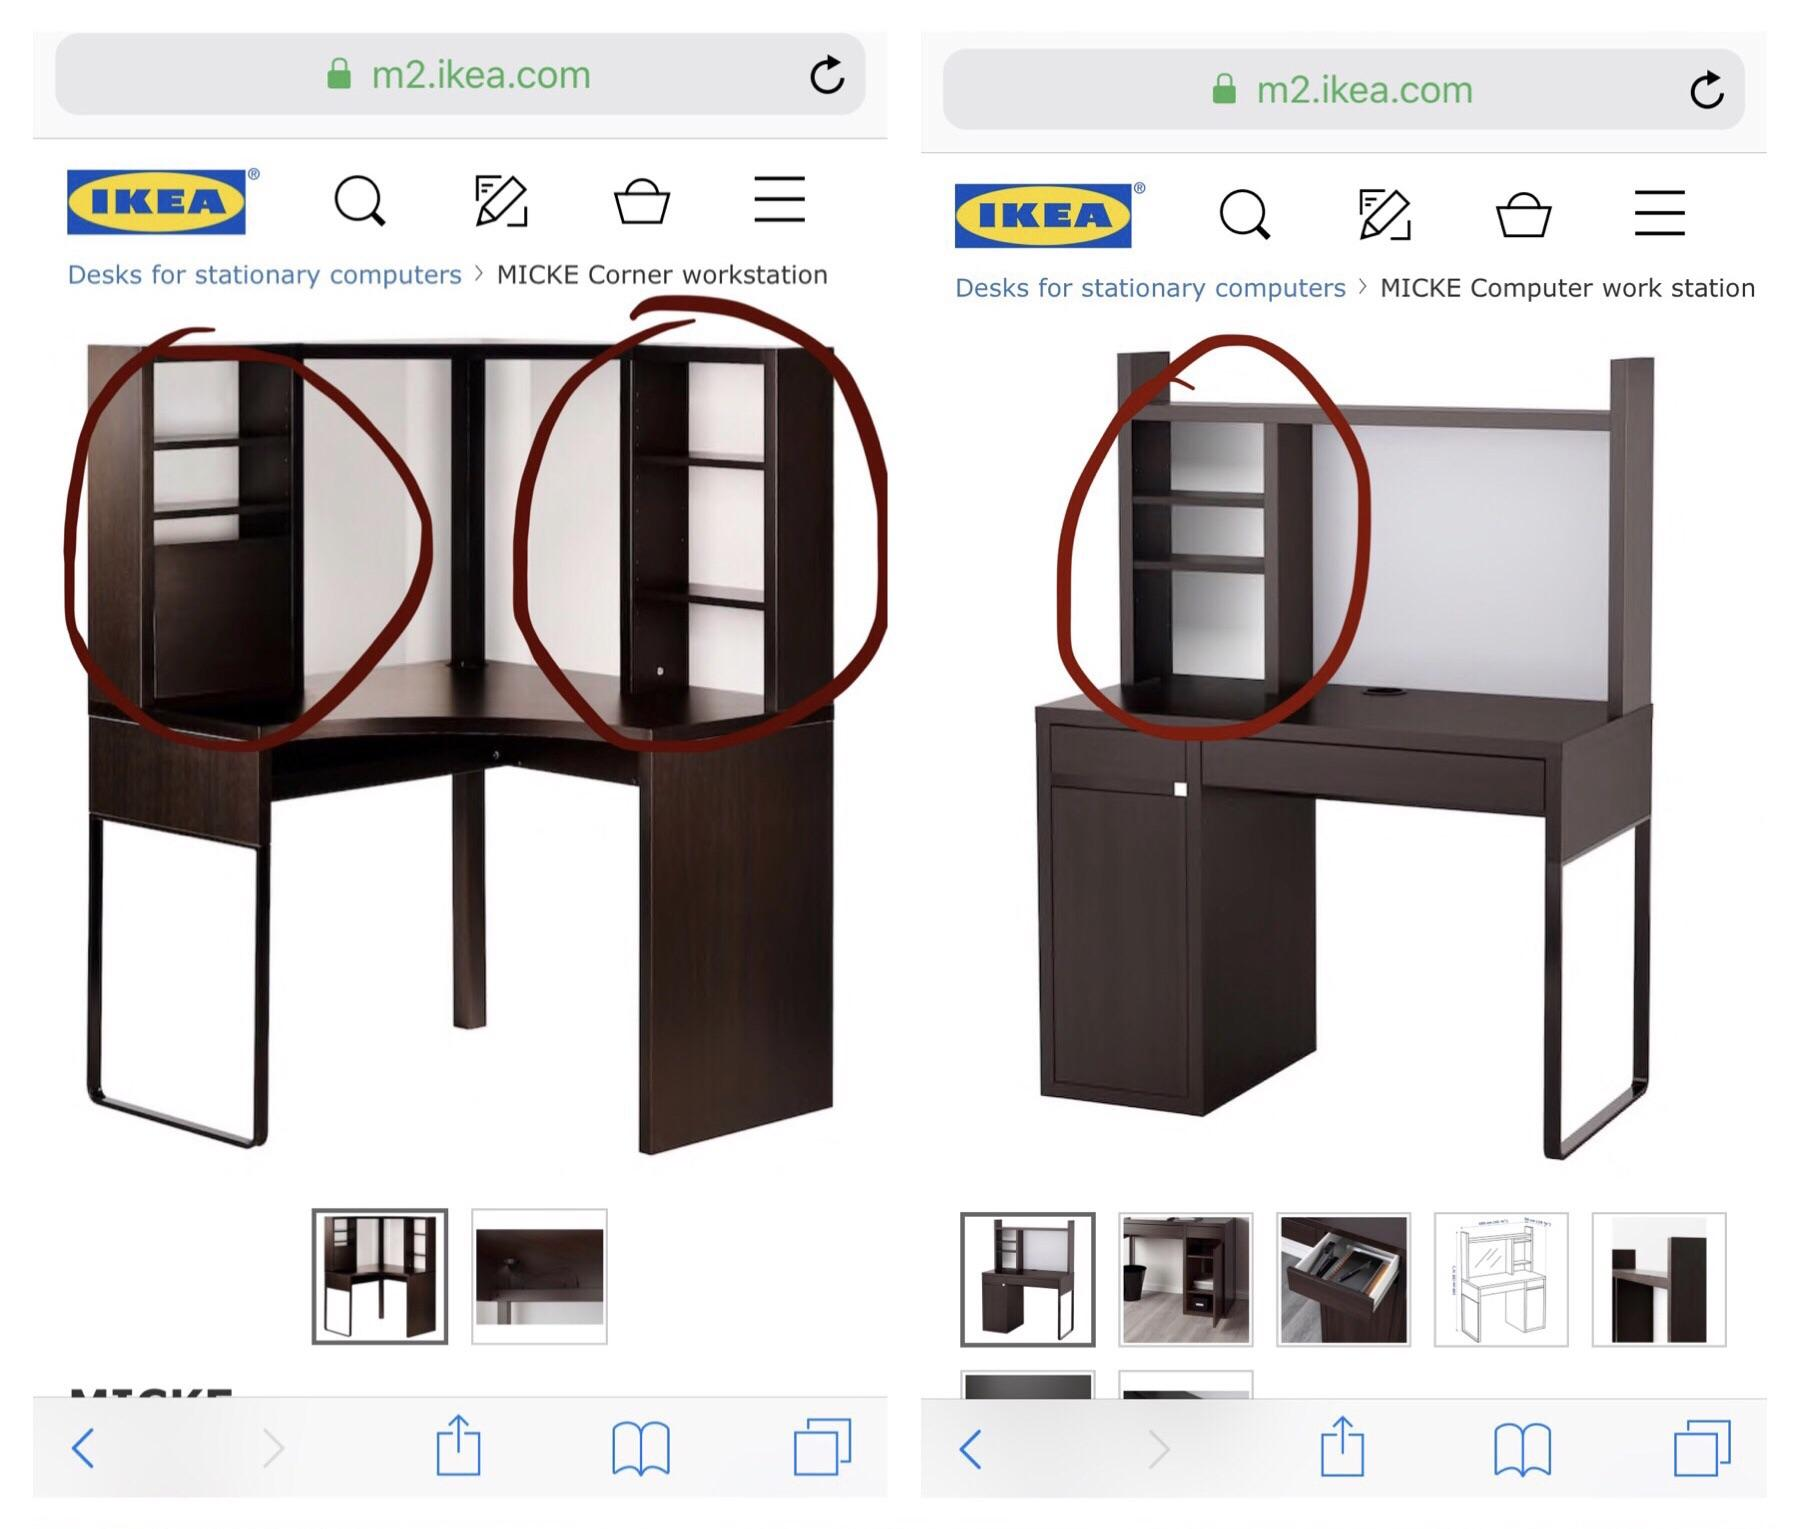 Does Anyone Know How Wide The Shelves On The Micke Are? : Ikea